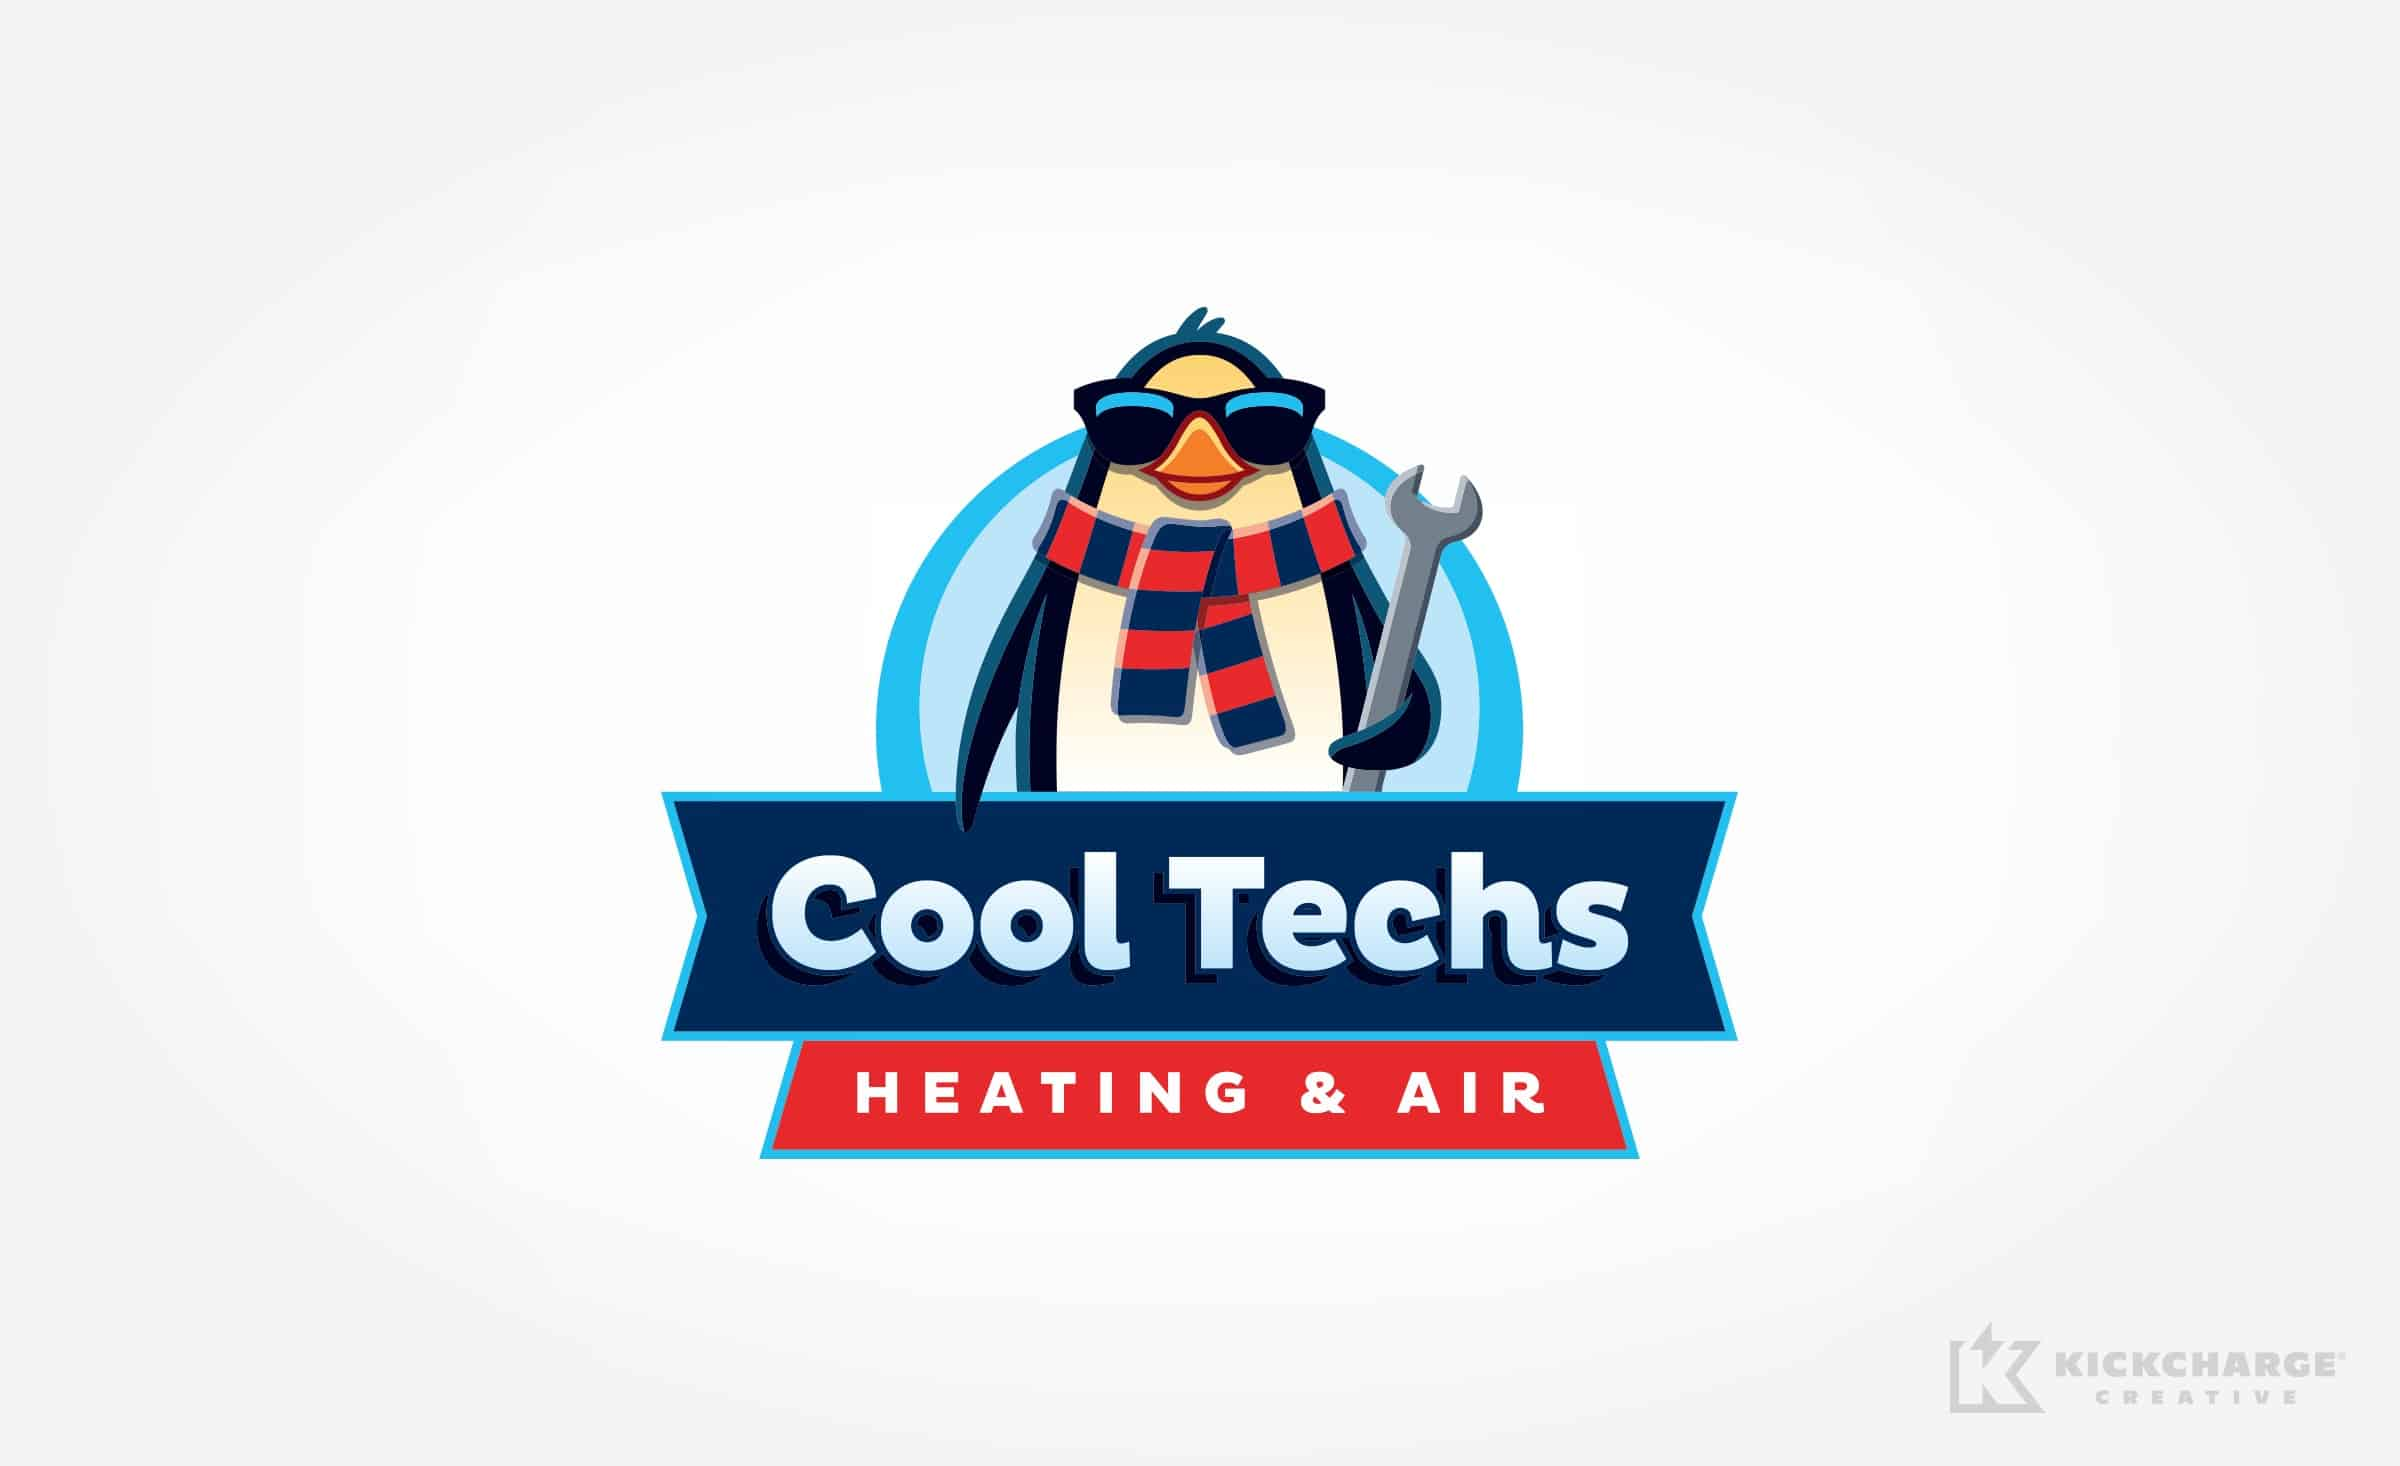 Cool Techs Heating & Air